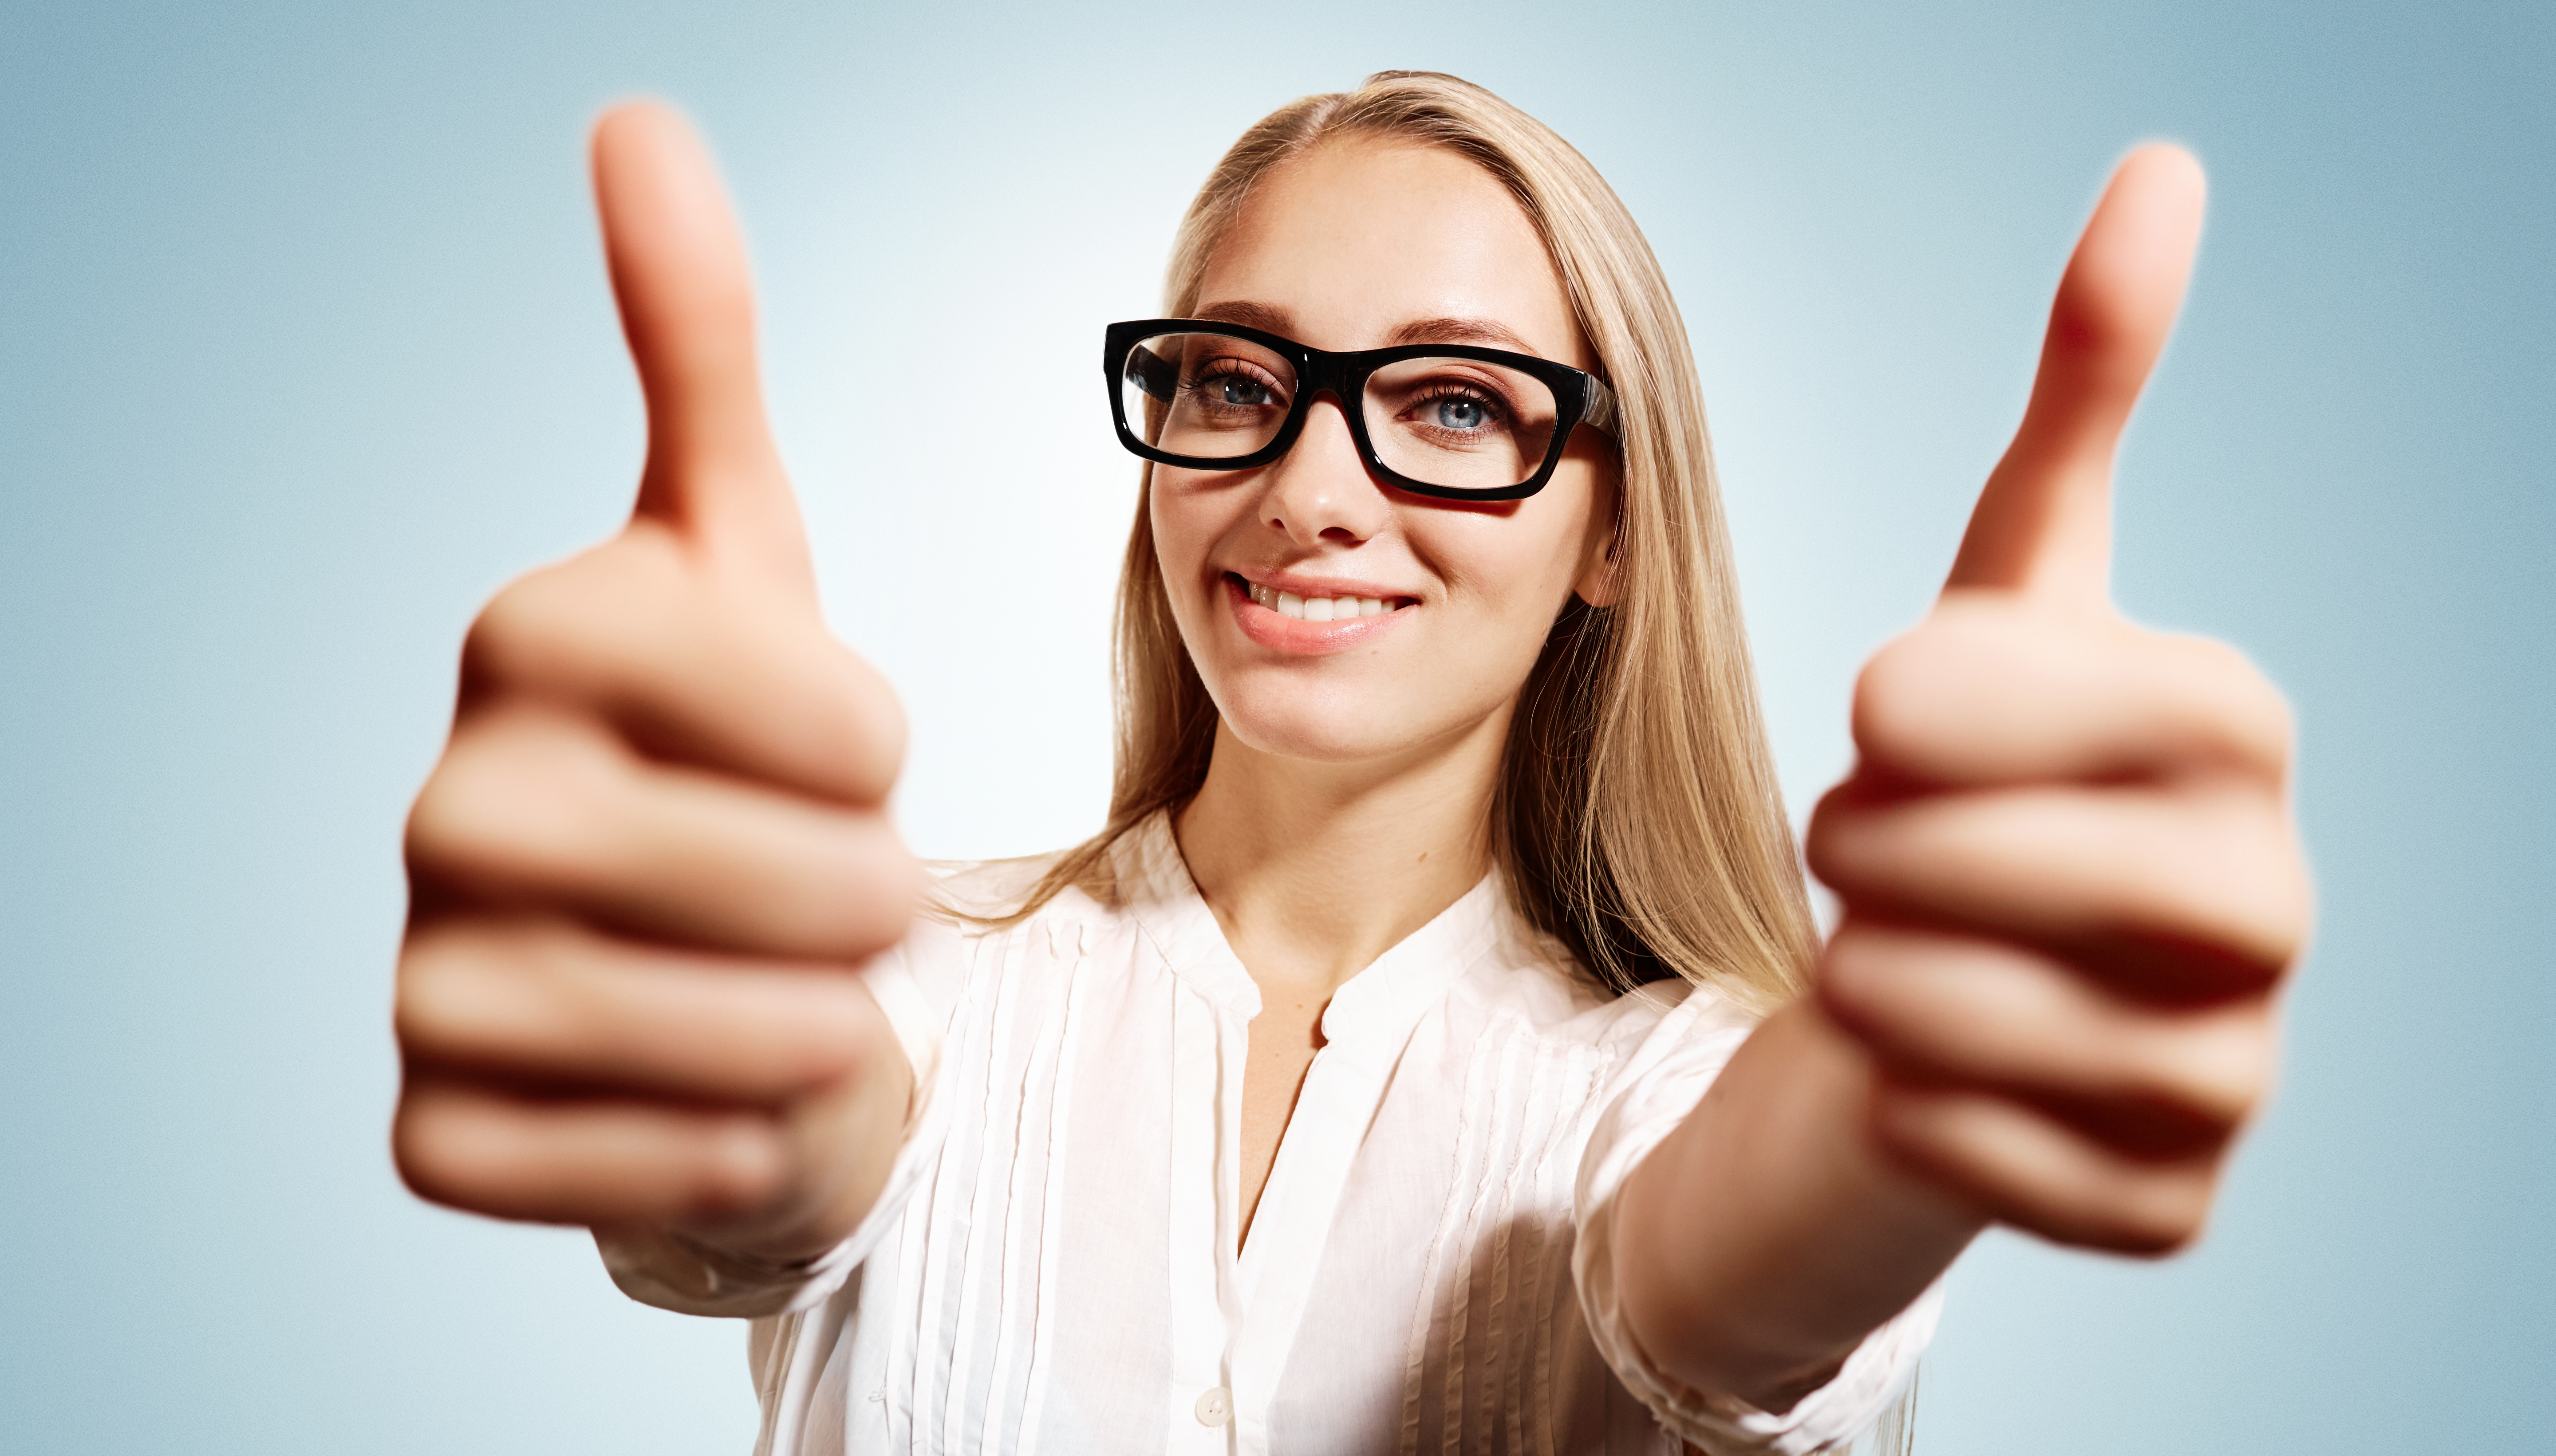 Closeup portrait handsome young smiling blonde business woman, corporate employee giving thumbs up sign at camera at blue background. Positive human emotions, facial expression, feelings.